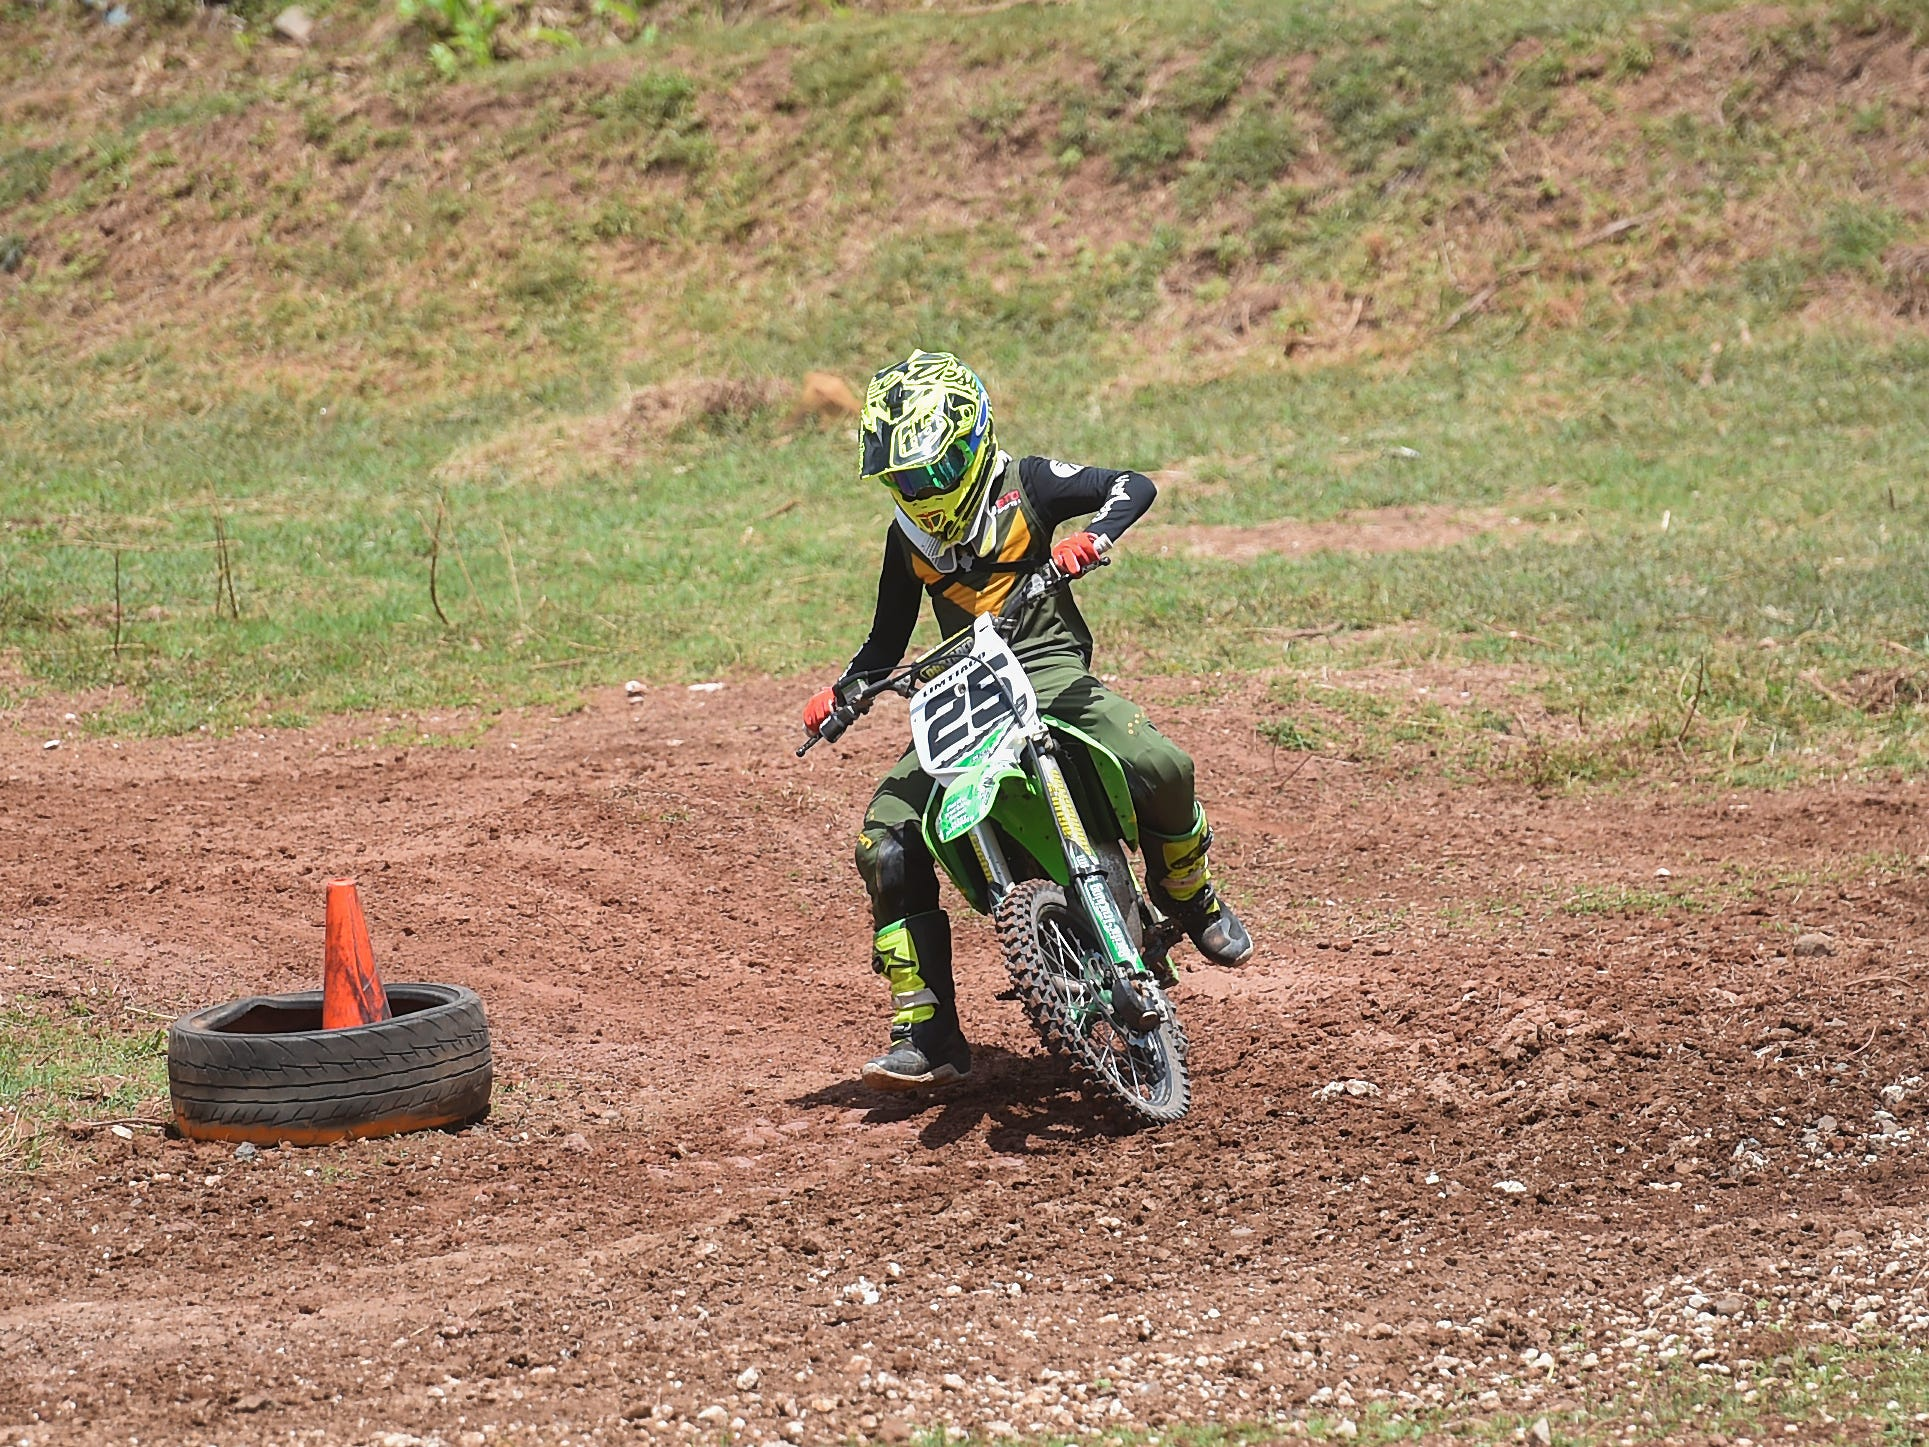 Motocross racer Lawrence Limtiaco makes a turn during a 85cc/150cc open kids minibike race in the Guam History and Chamorro Heritage Day Festival 2019 at Umatac Bay Park, March 10, 2019.